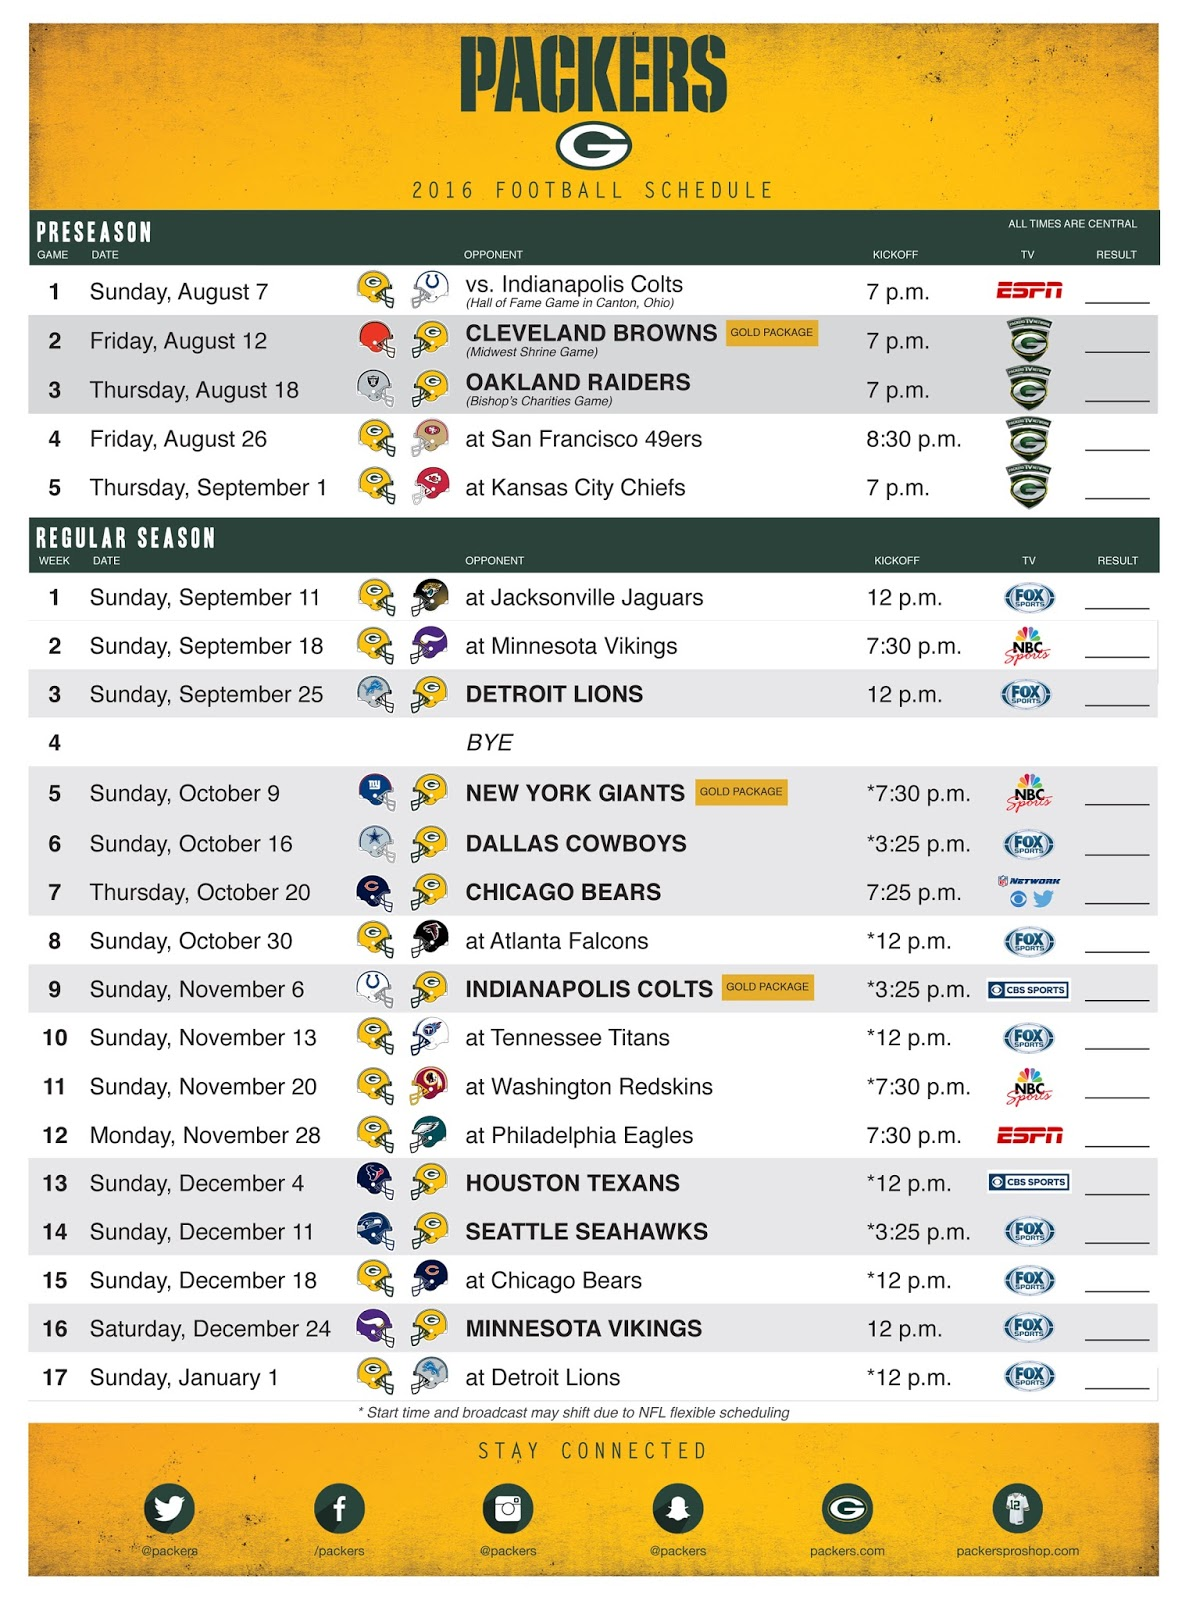 packers schedule photos - jen hill photo